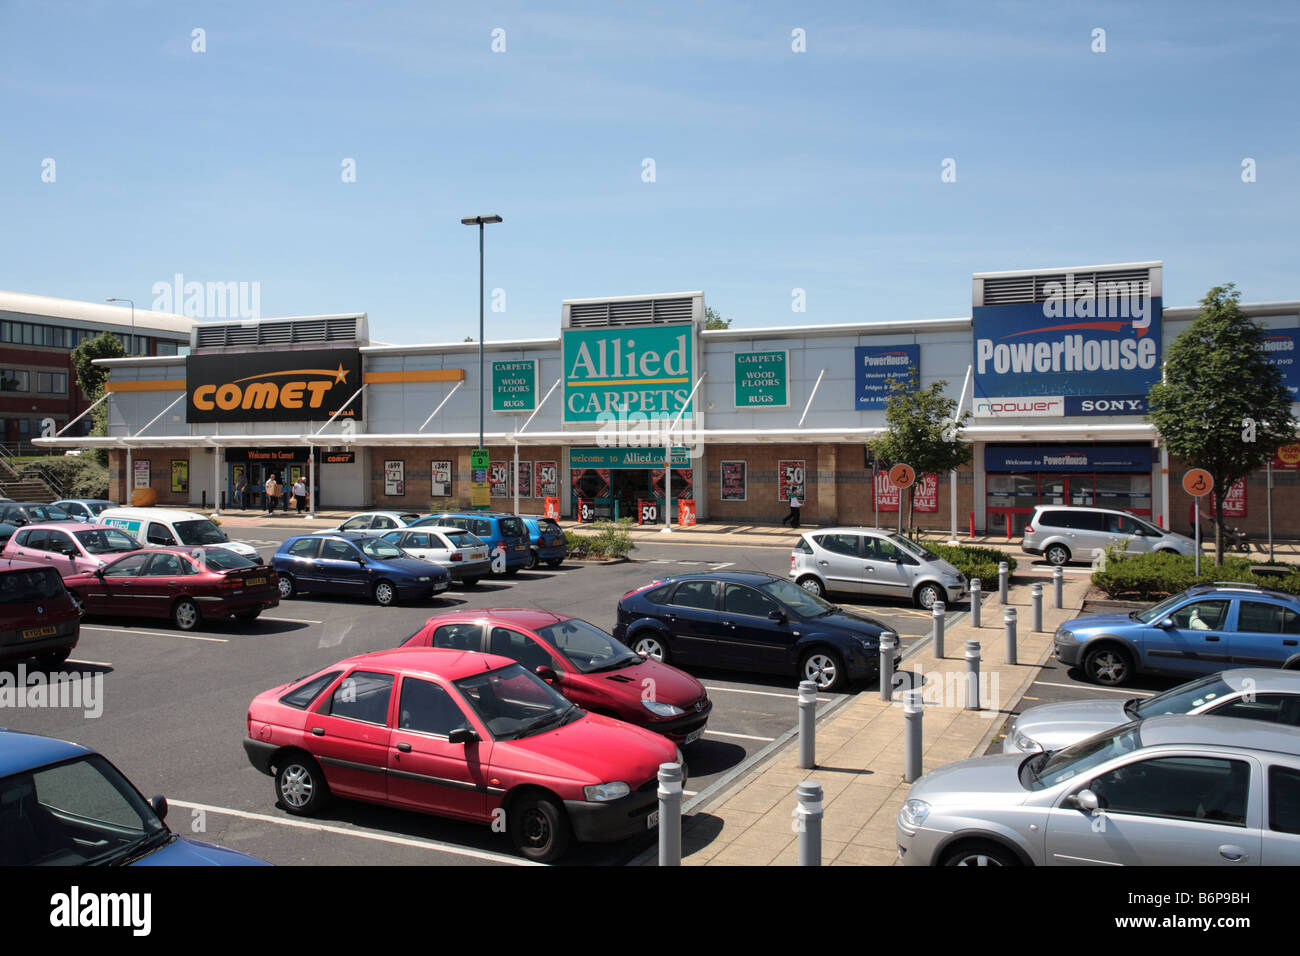 Comet Electrical, Allied Carpets and former Powerhouse stores, Robin Retail Park, Wigan - Stock Image